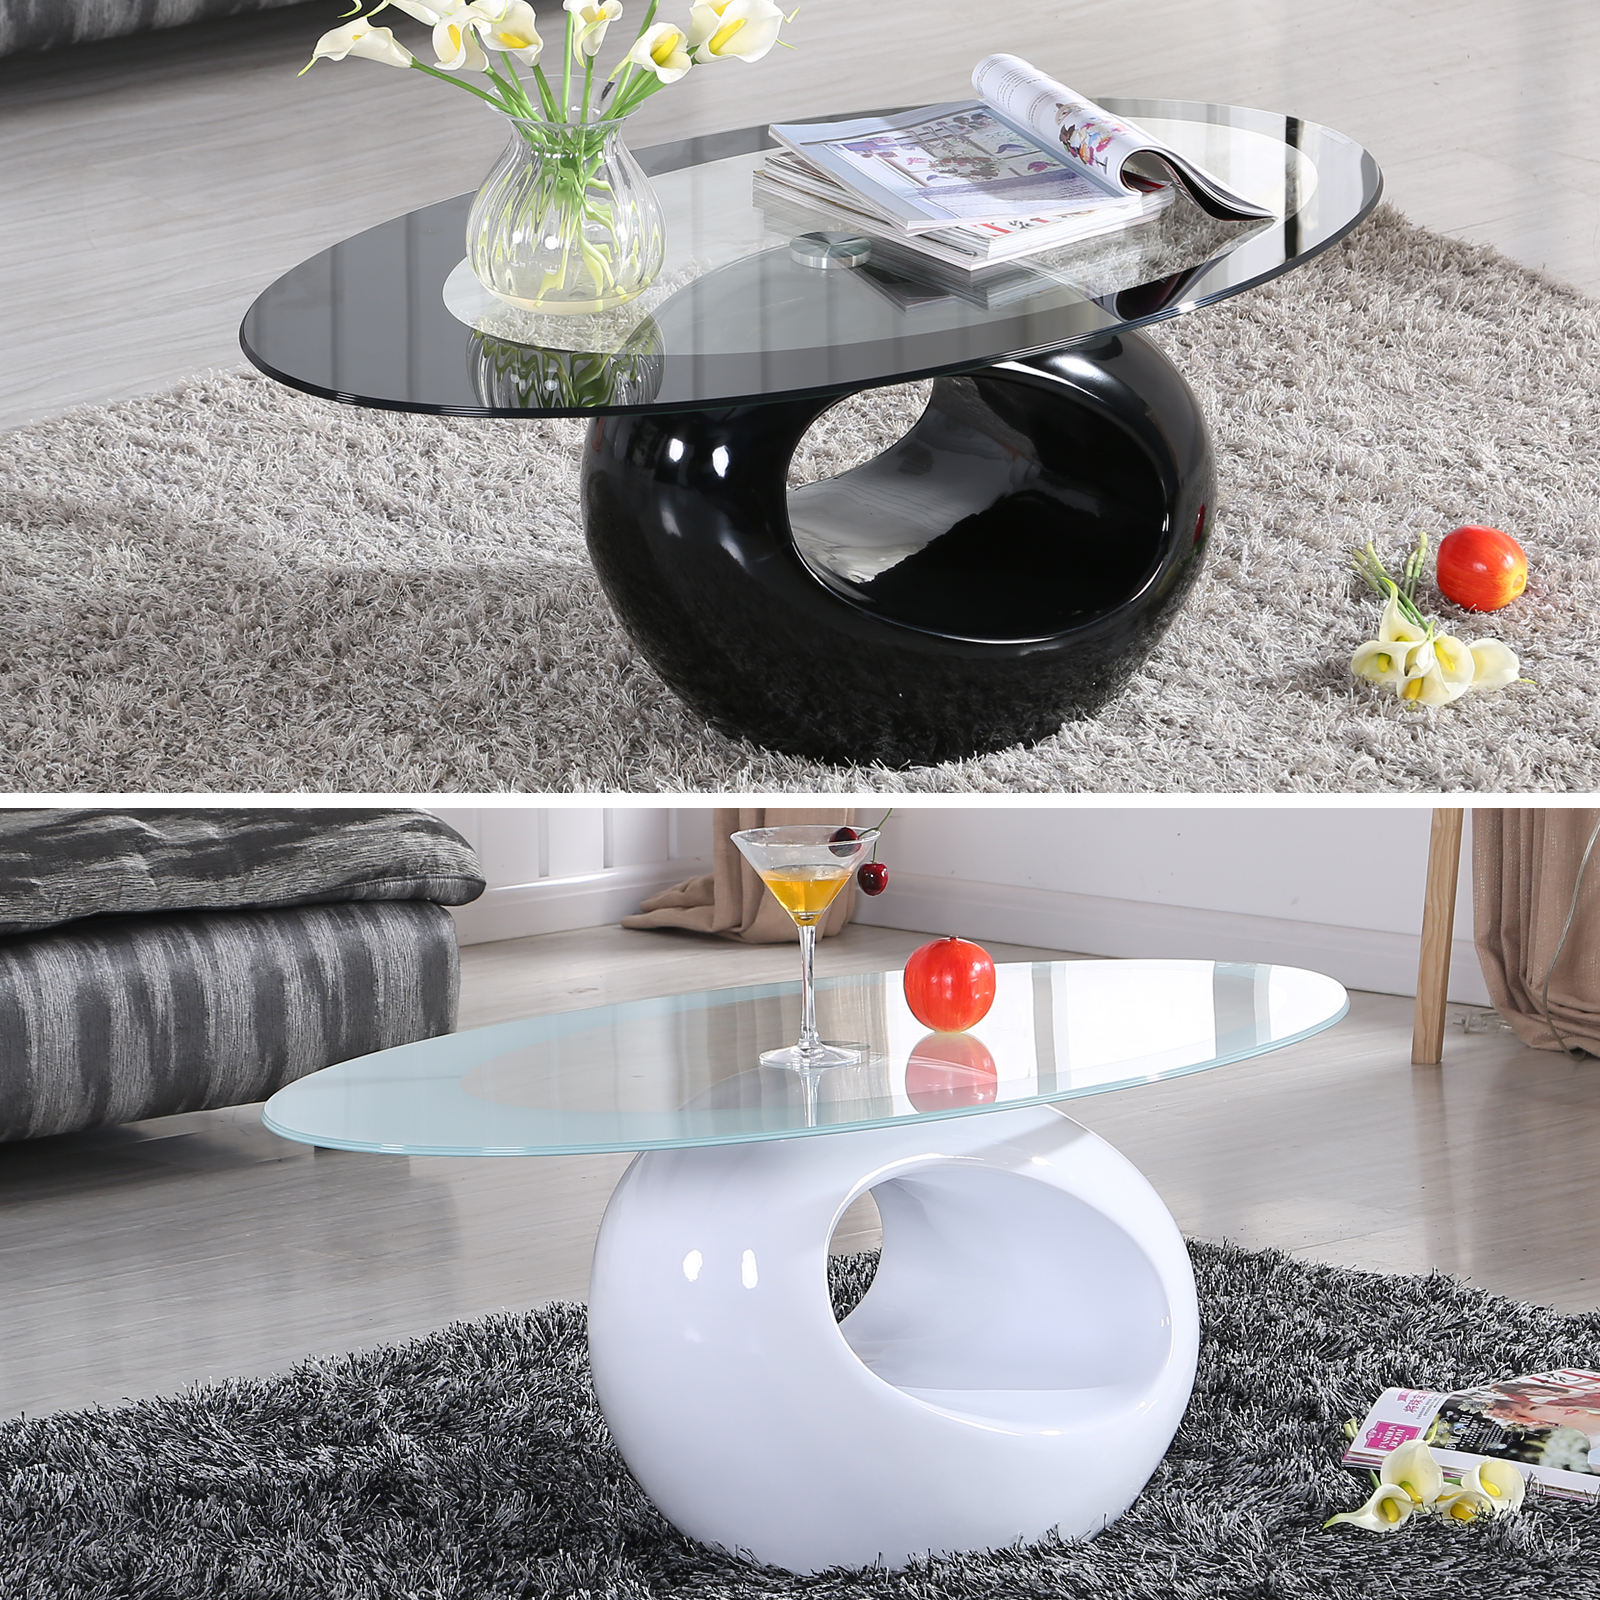 fabulous 1312 tea table living room furniture tempered glass | Glass Oval Coffee Table Contemporary Modern Design Living ...